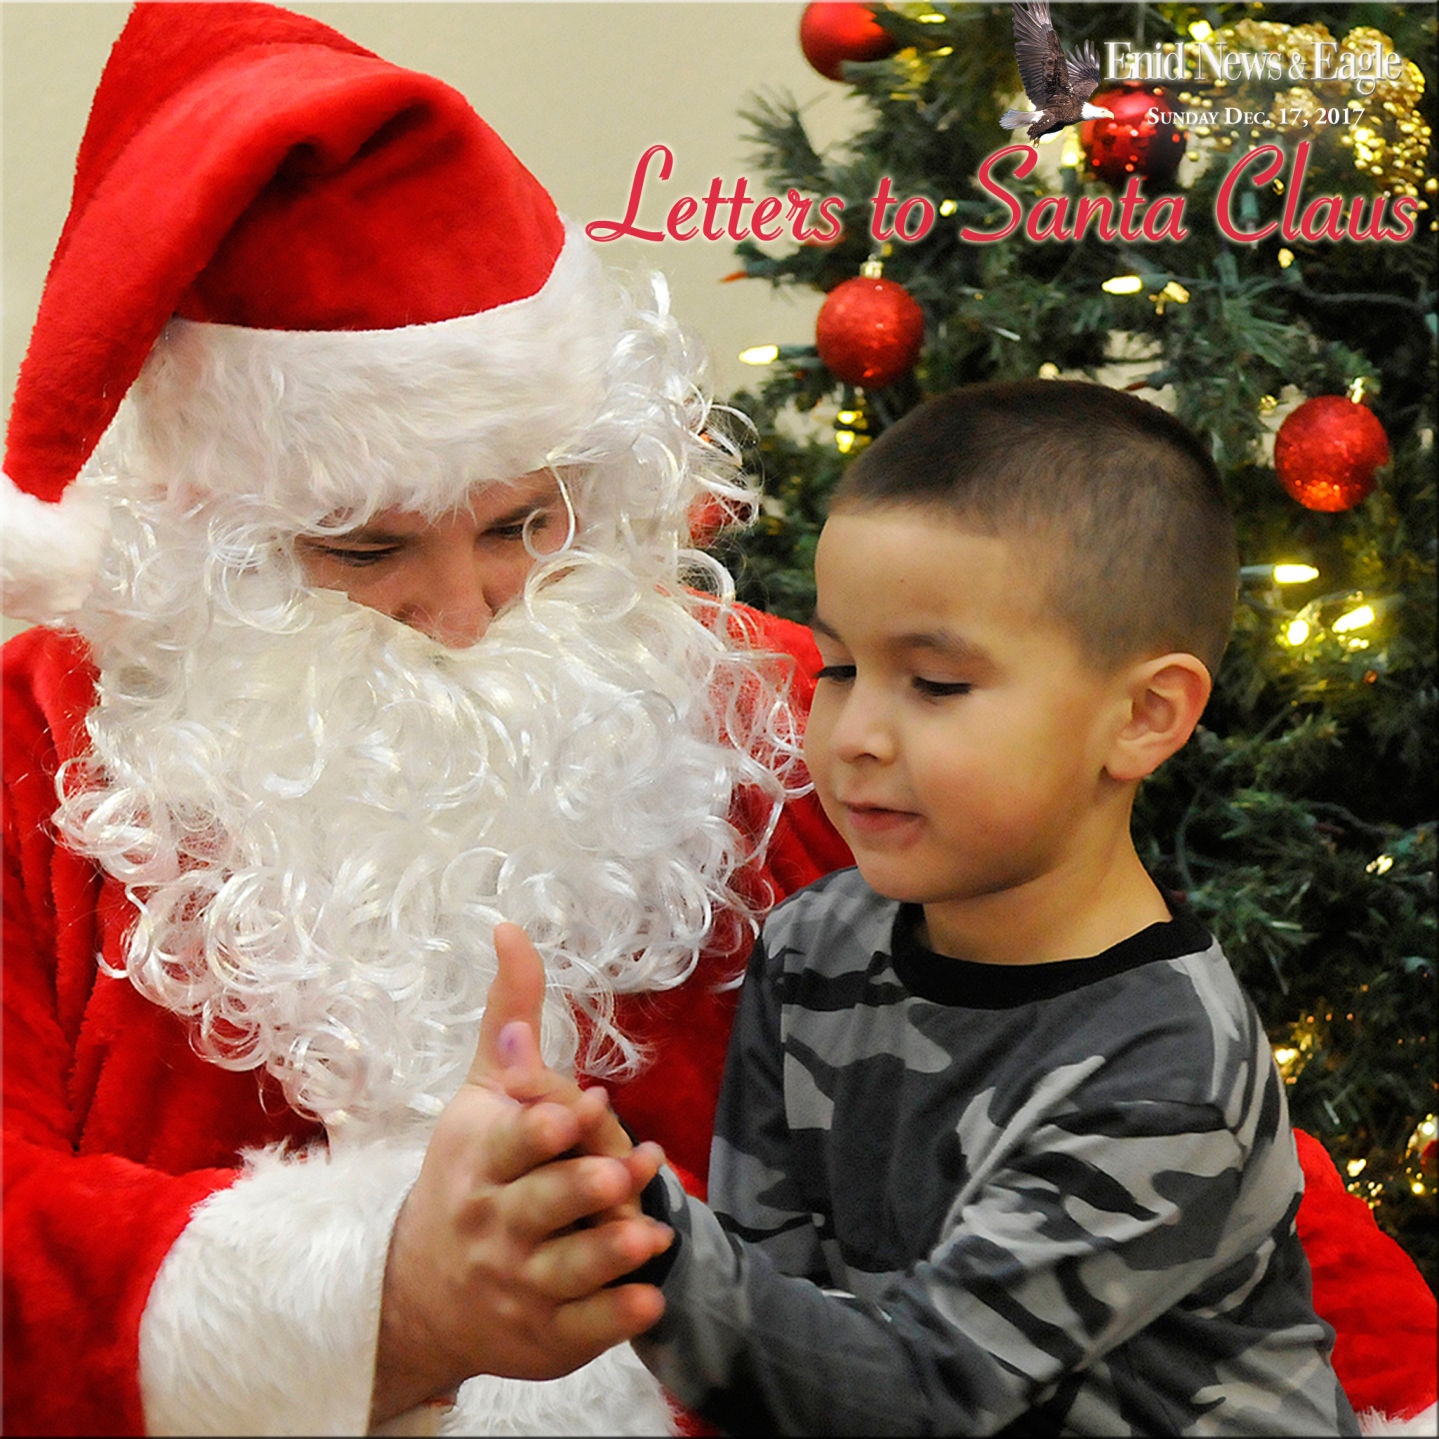 Letters to Santa Claus 2017 Letters to